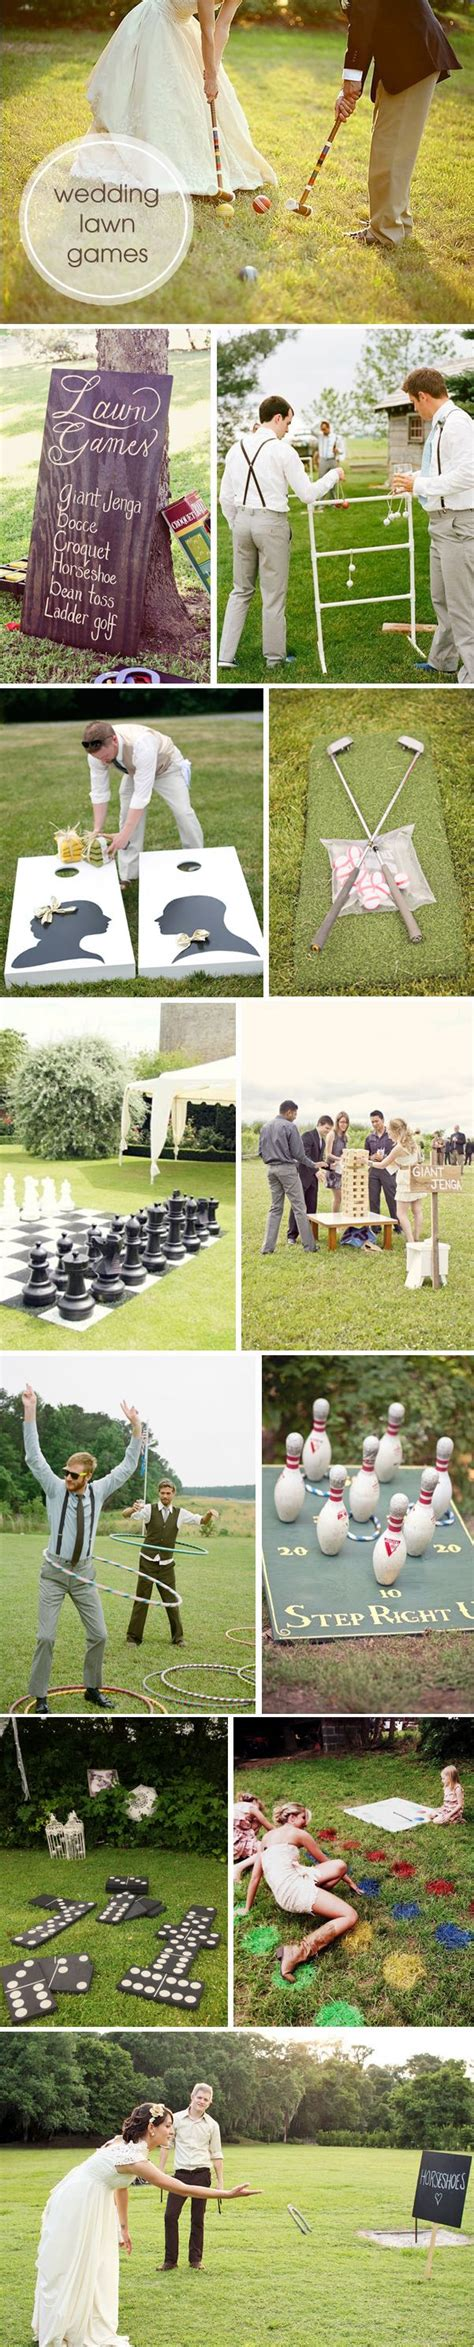 backyard wedding games lawn games on pinterest outdoor wedding games giant